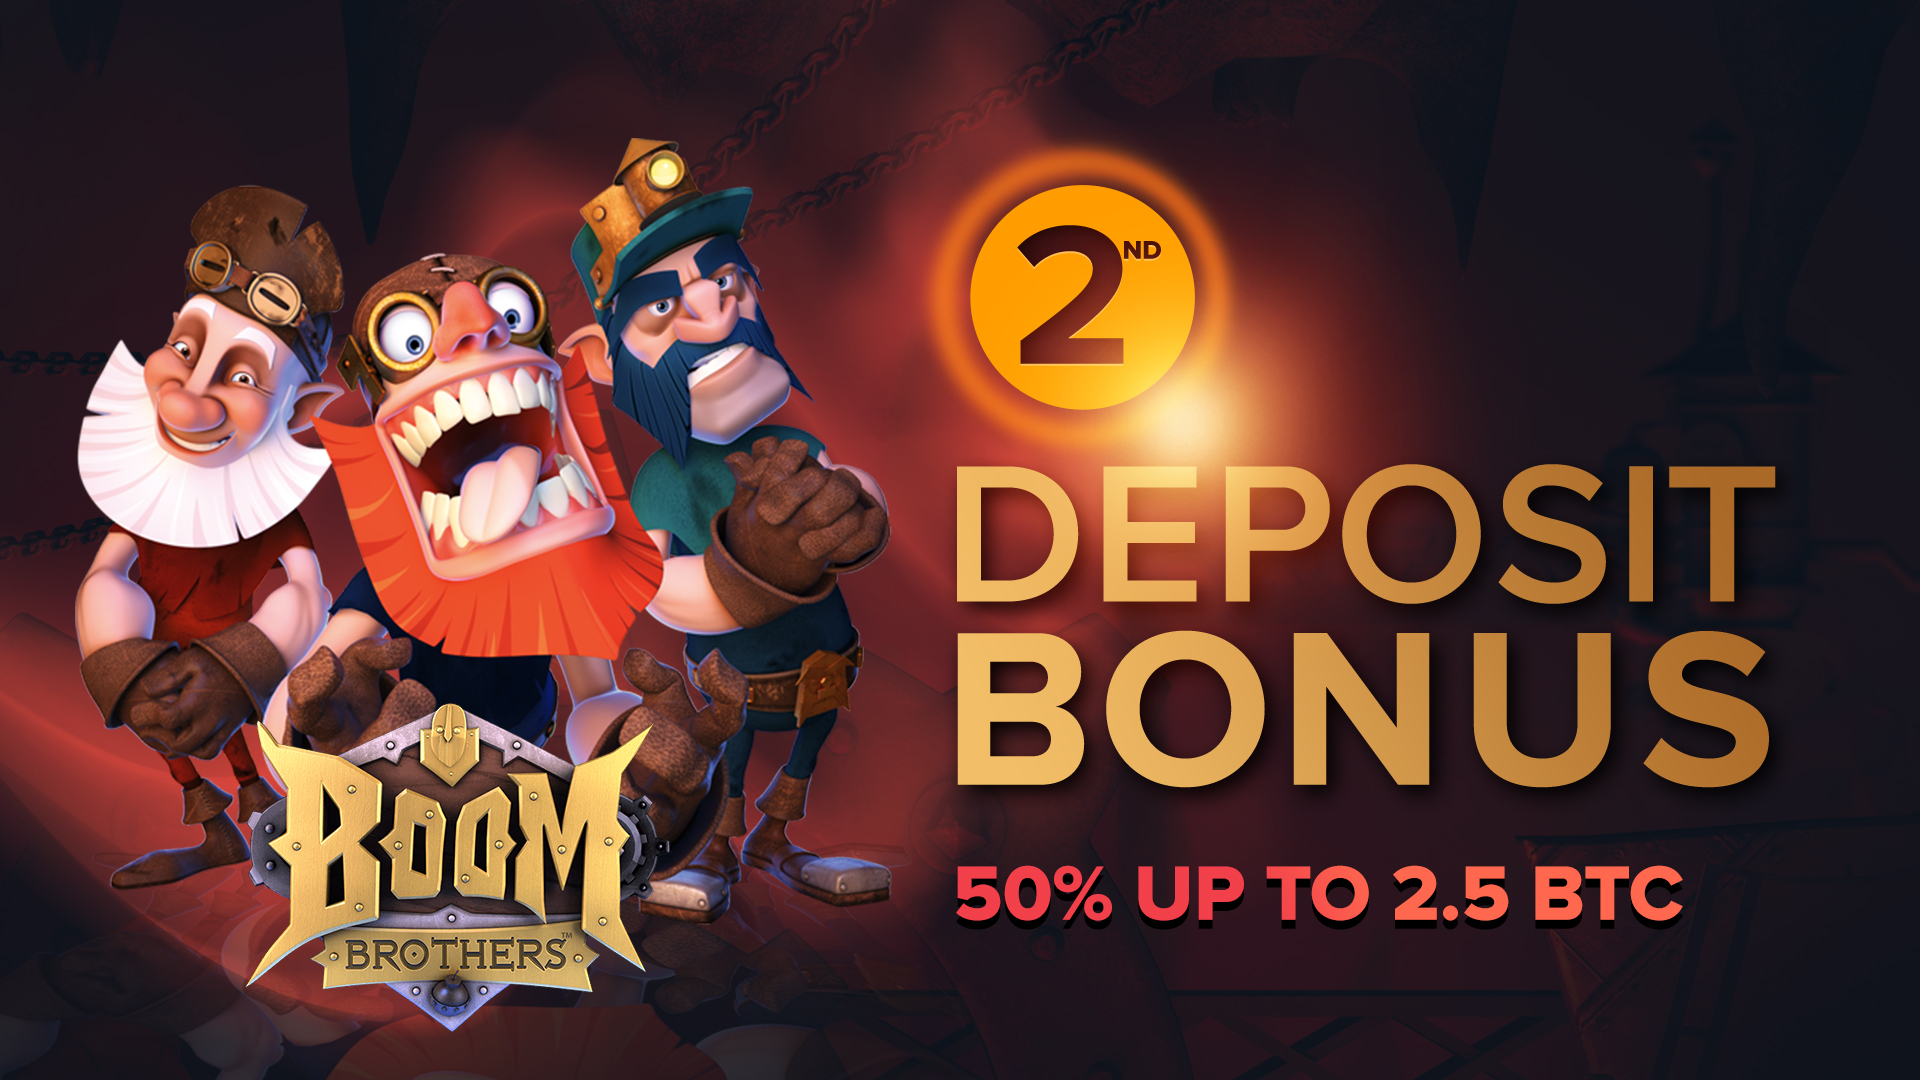 Exclusive 50% up to 2.5 BTC Second Deposit Bonus at mBitcasino